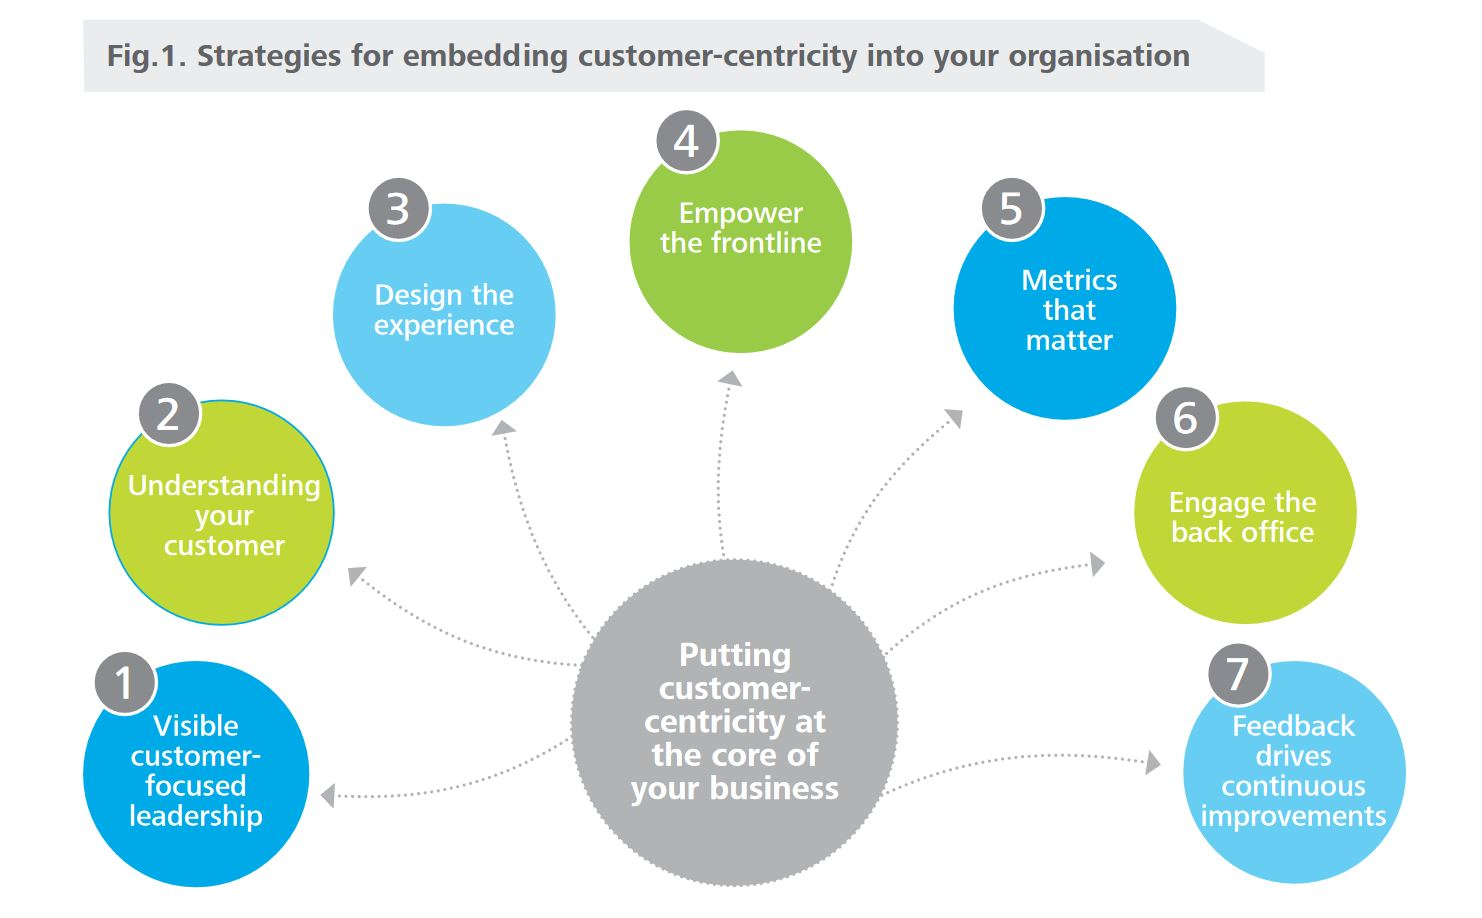 customer-centric processes